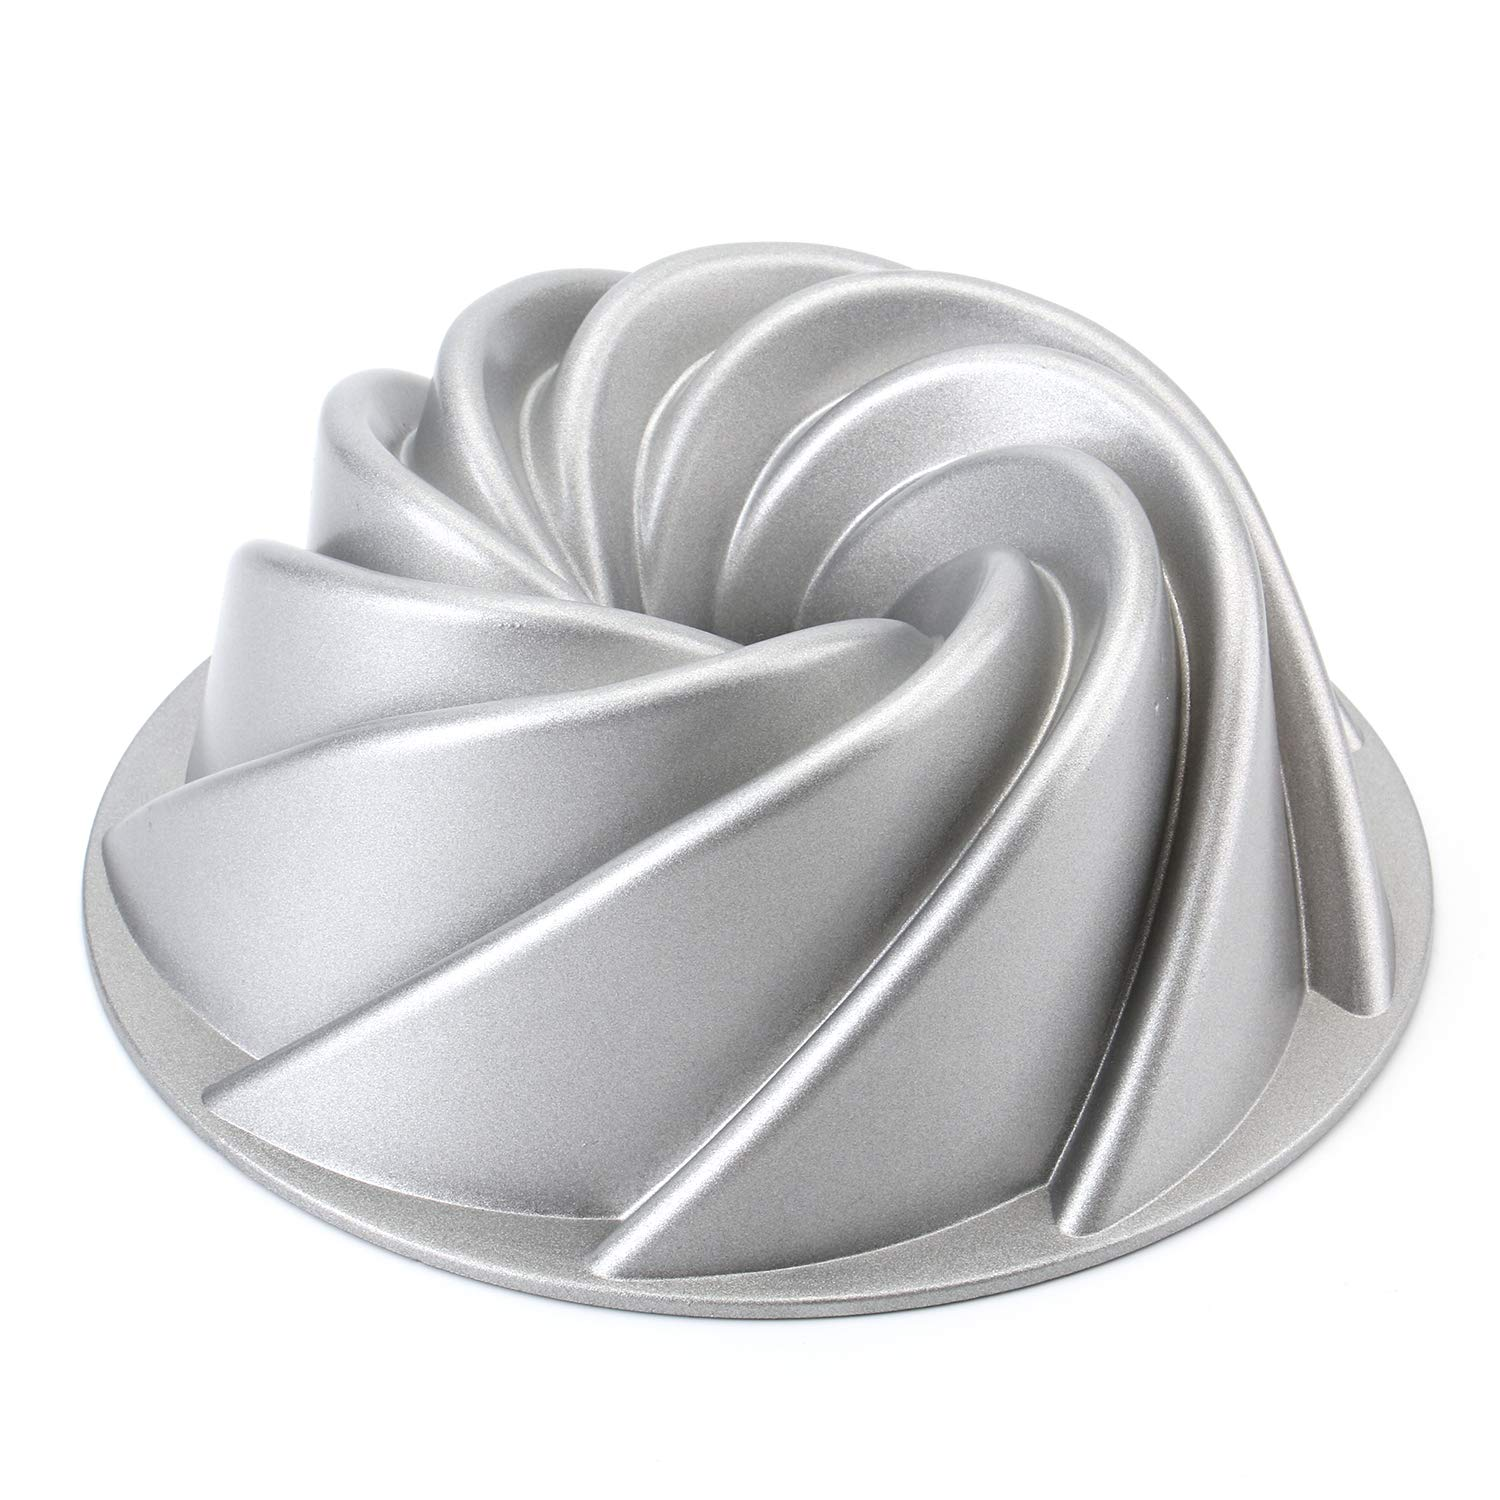 Tosnail 9-Inch Non-Stick Fluted Cake Pan Round Cake Pan Specialty and Novelty Cake Pan